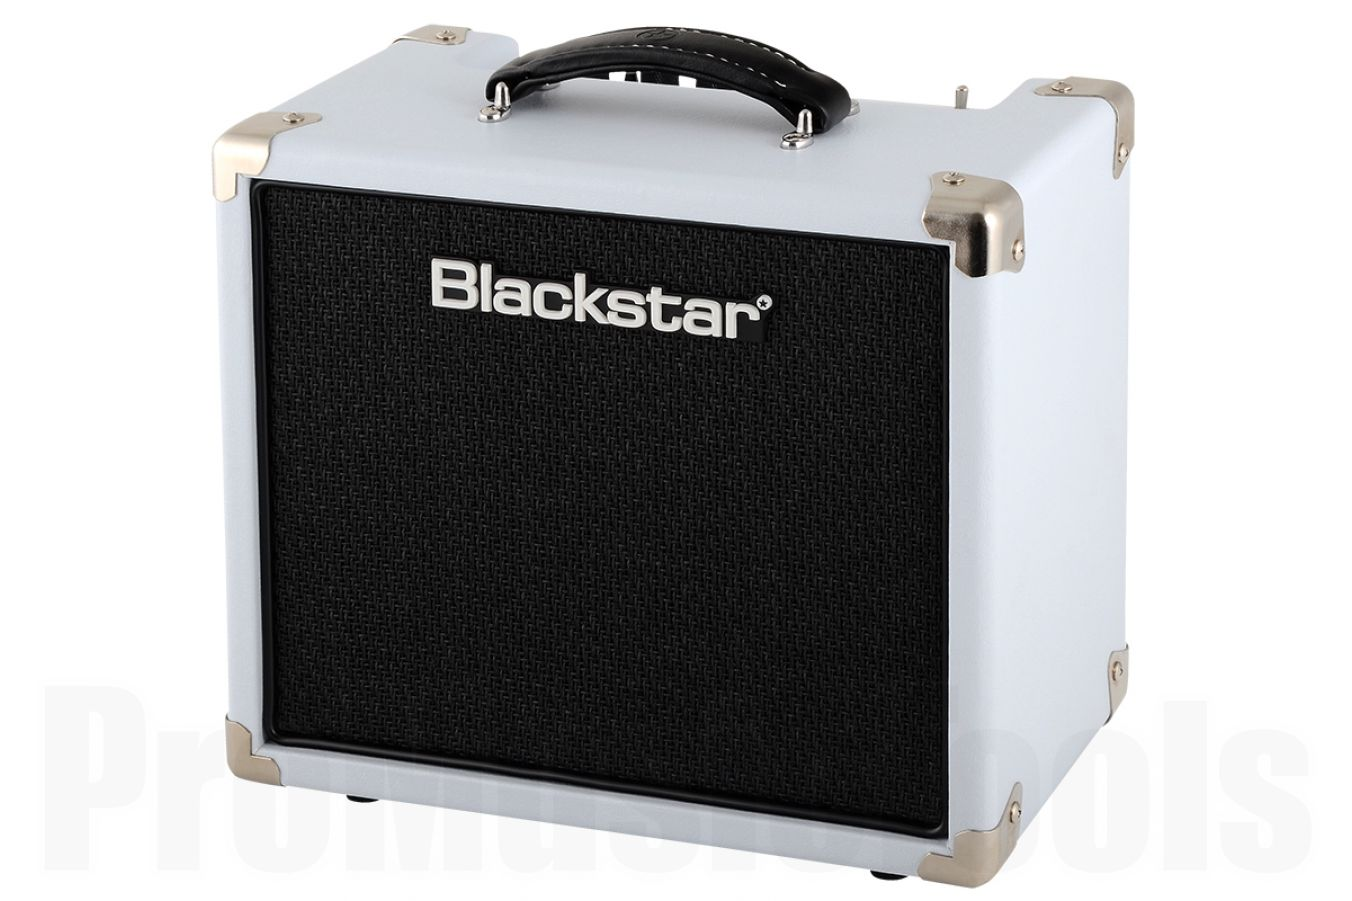 Blackstar HT-1R-W Combo - Limited Edition